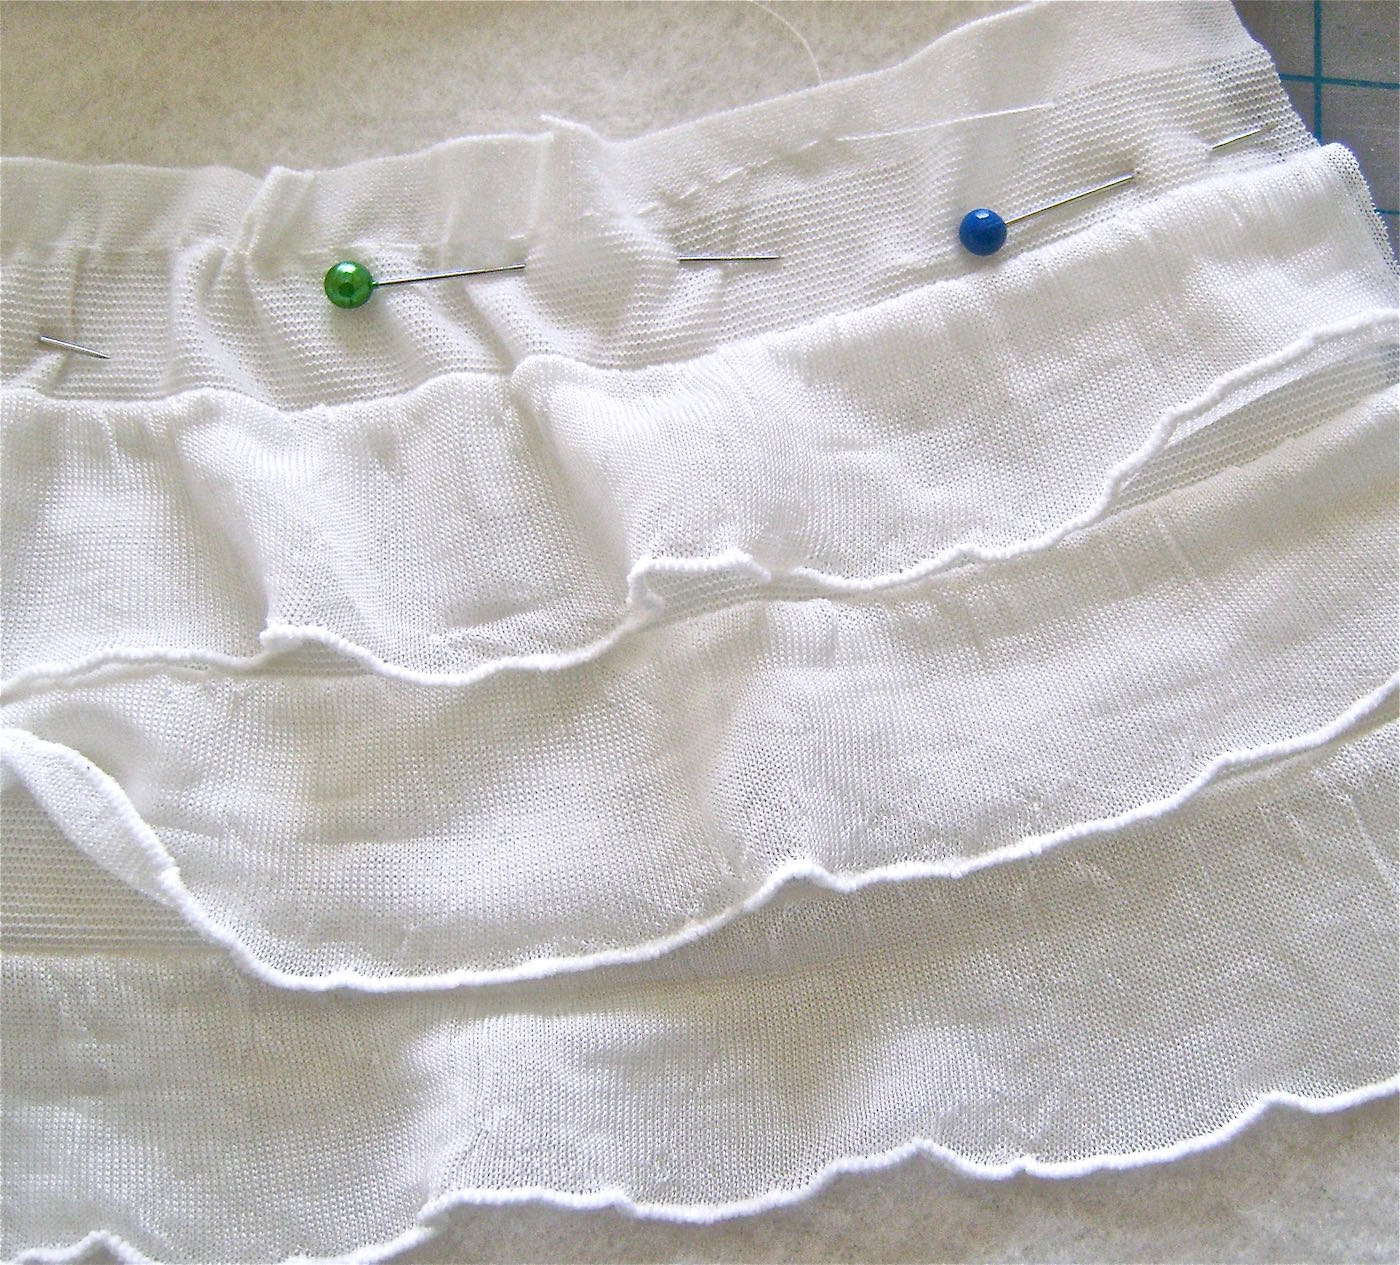 """step 3 - With a basting stitch, gather the ruffles starting at 3.25"""" in from the end and ending at 3.25"""" from the other end. The purpose of gathering the strips is to ease fabric to fit the curve of the fleece."""